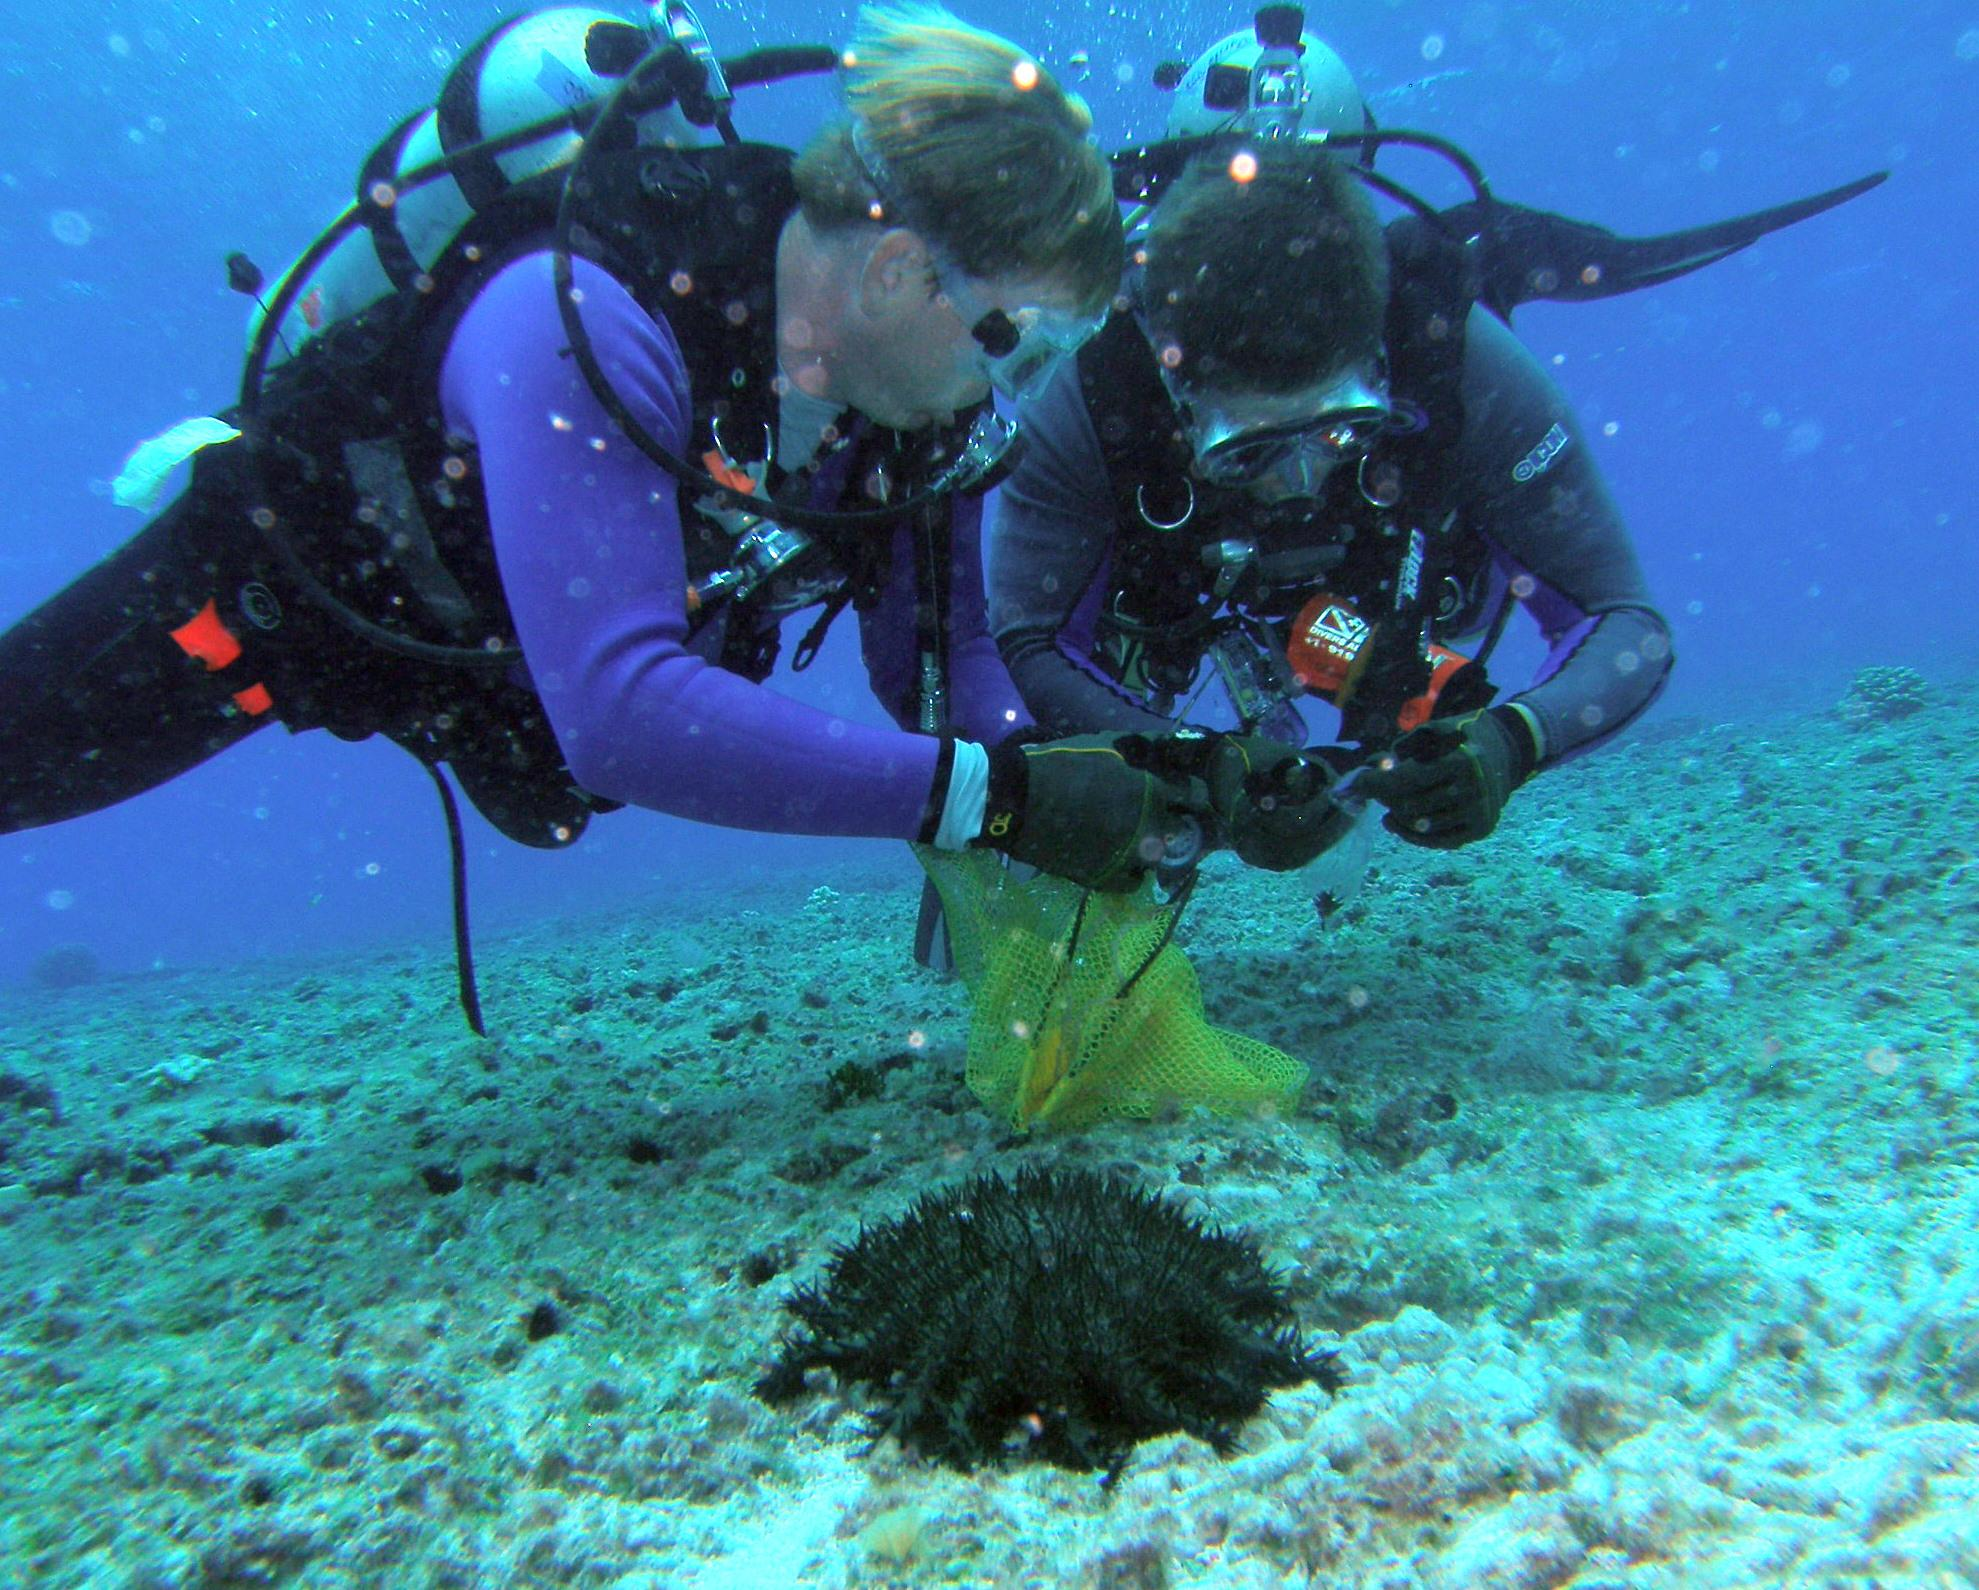 mānoa researchers disprove 30 year hypothesis about sea star